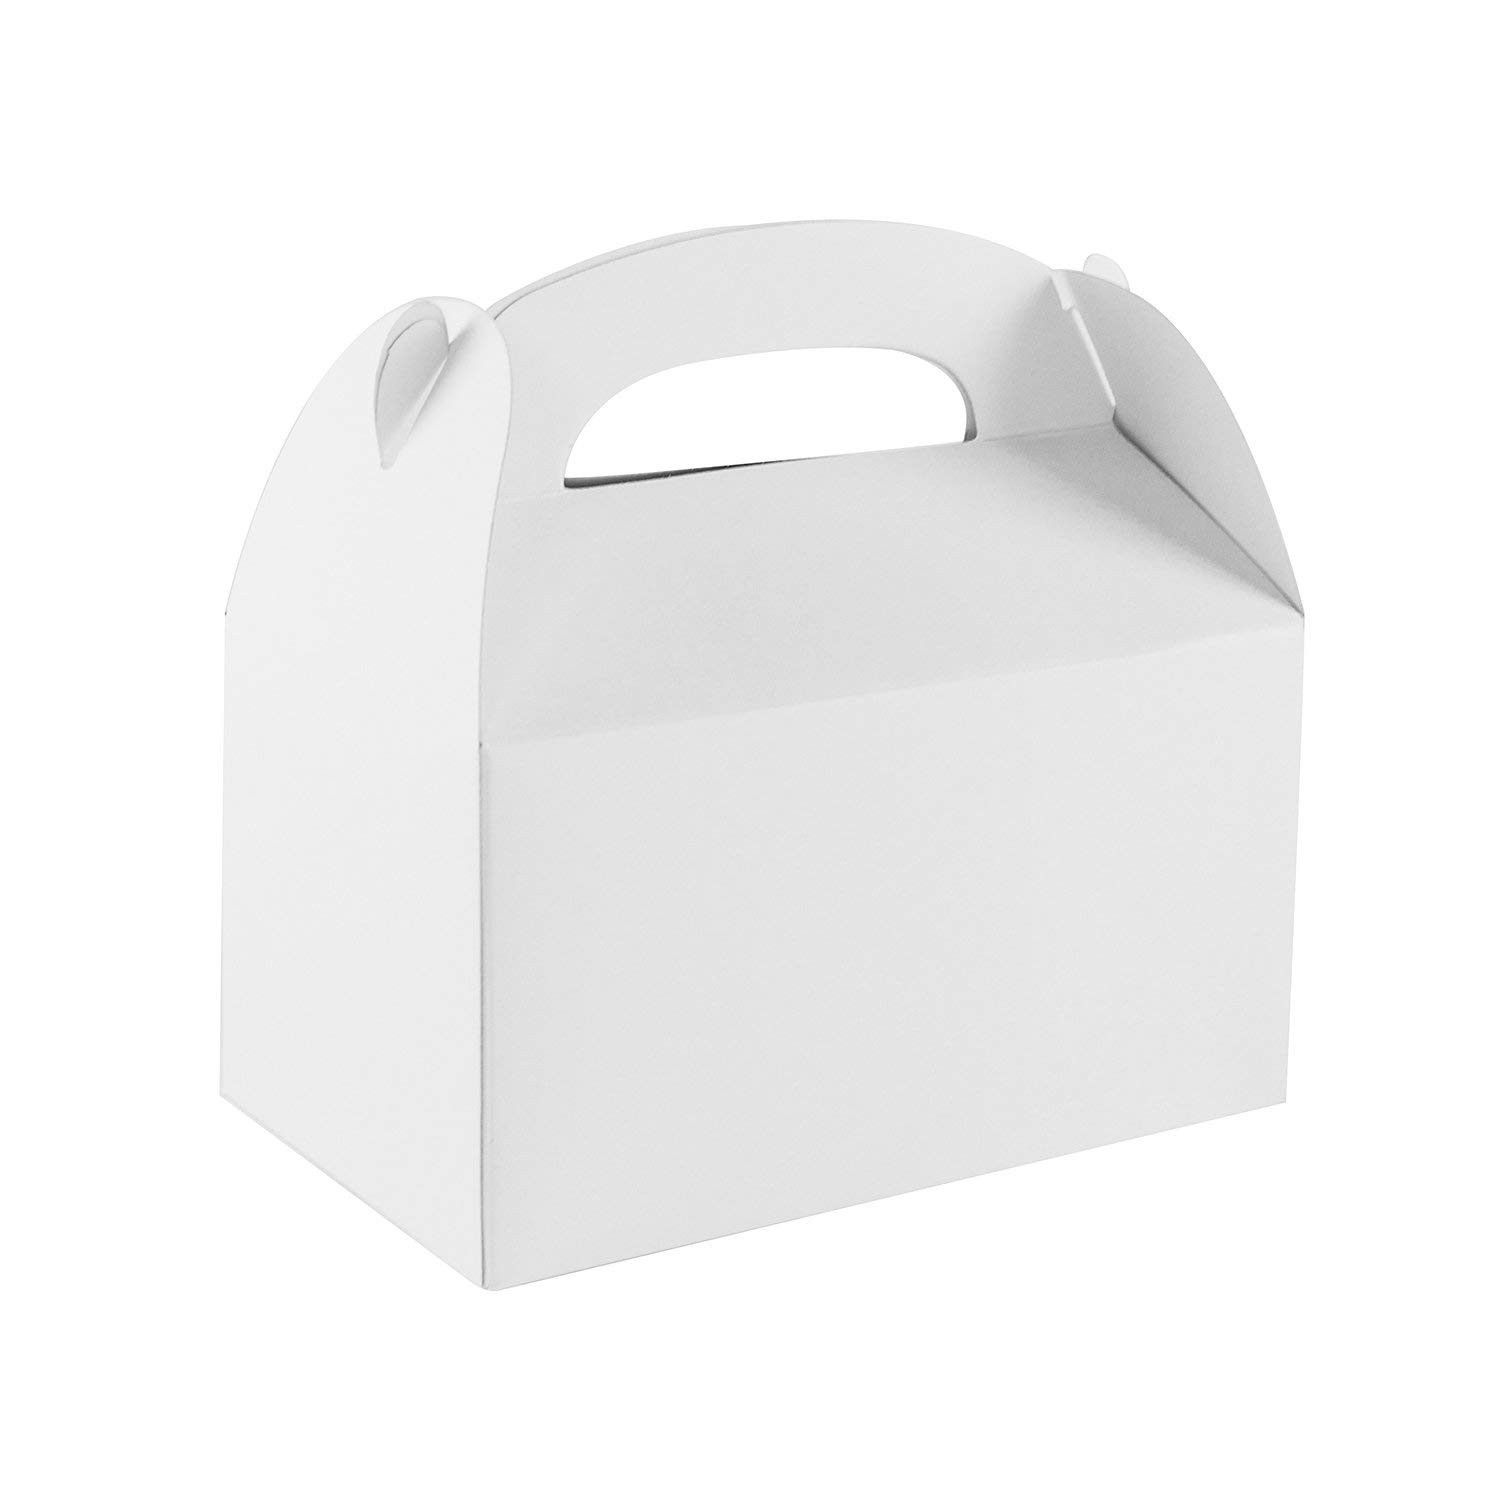 Blank white color treat gift paper cardboard boxes with